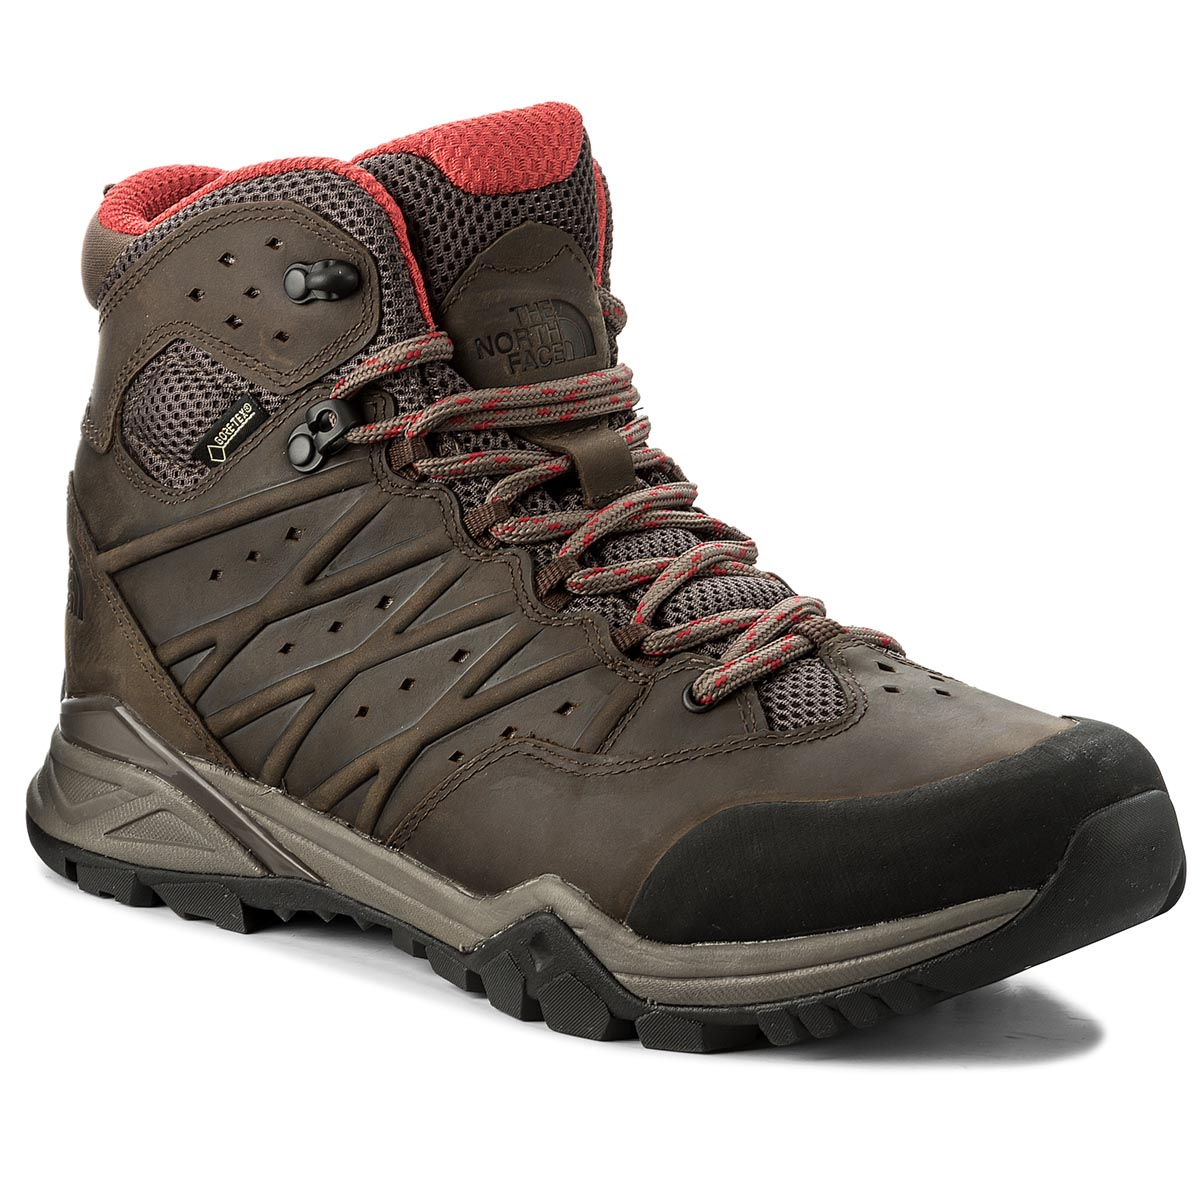 Trekkings THE NORTH FACE - Hedgehog Hike II Mid Gtx GORE-TEX NF0A2YB44DC Bonebrn/Ragered